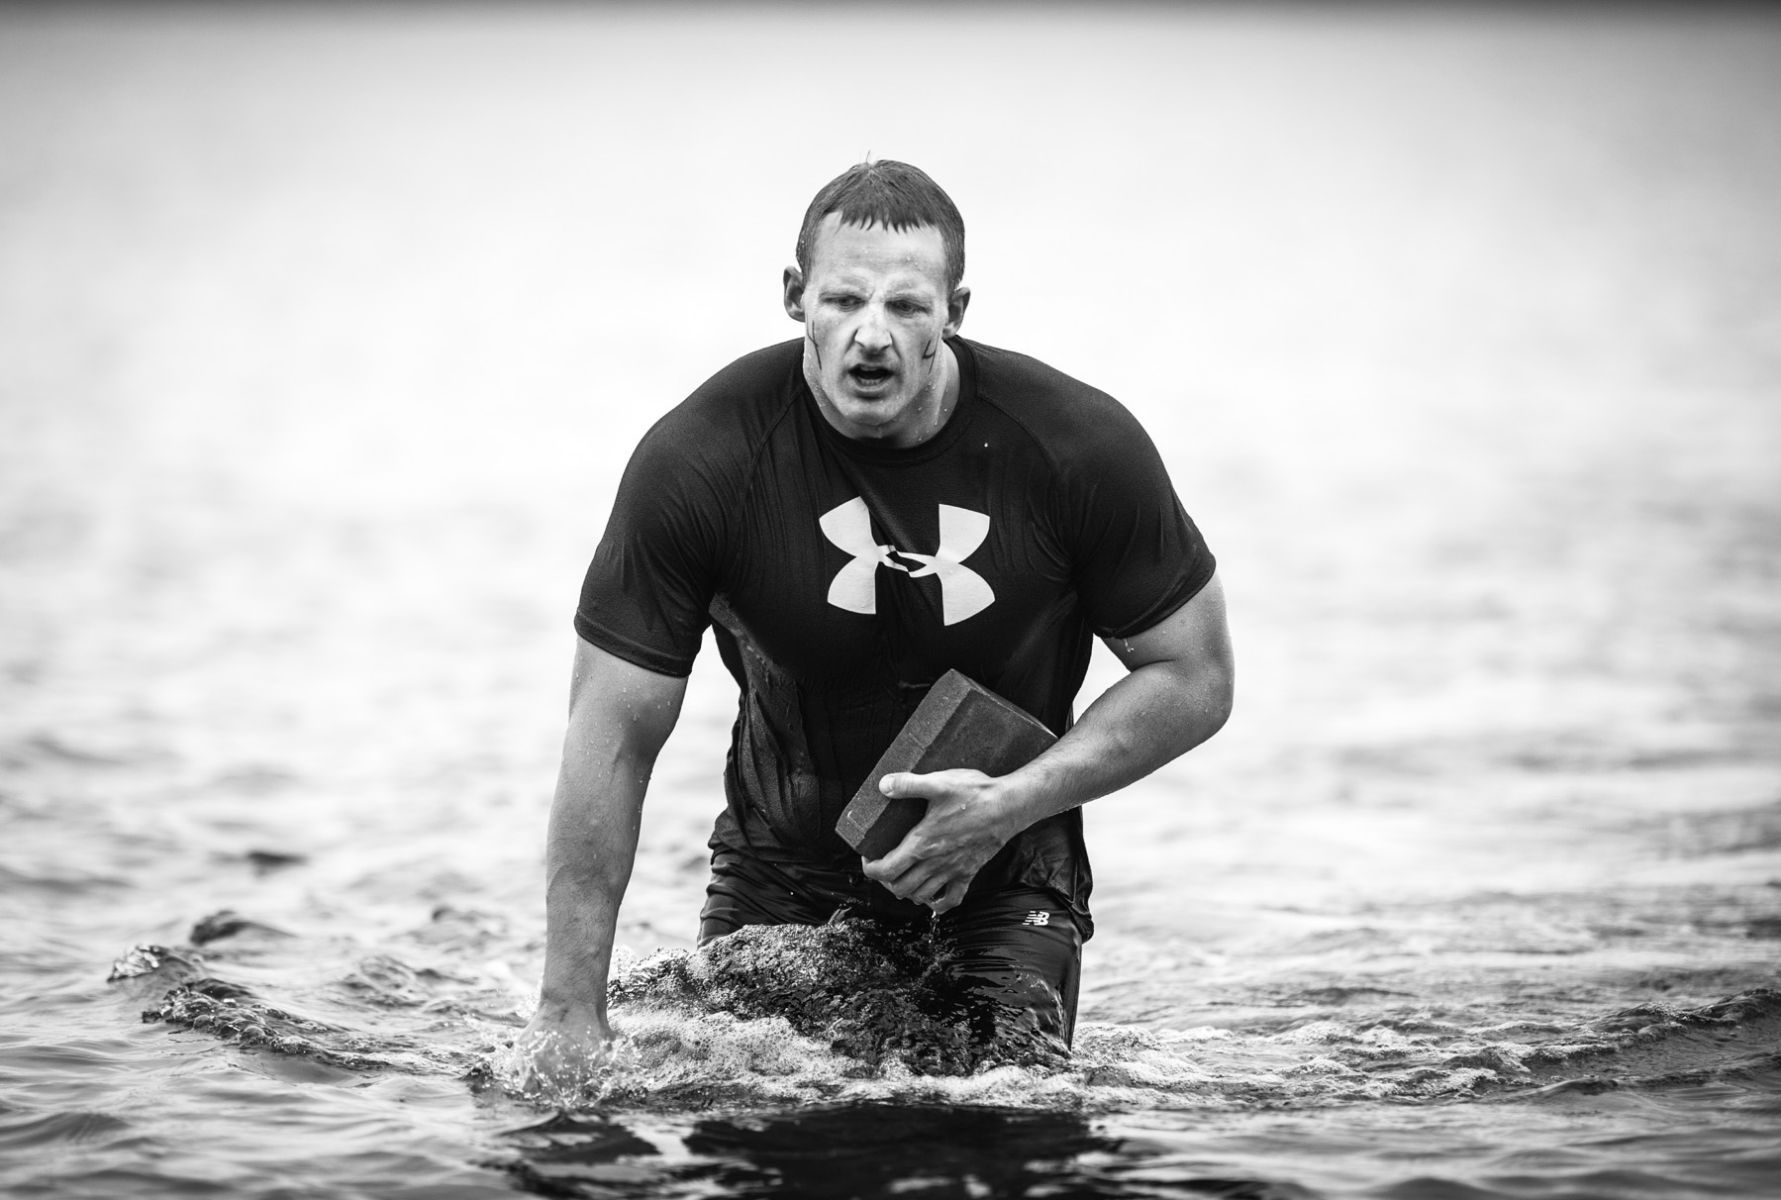 1j__rgen_spedsbjerg_ebbesen_photography_extrem_endurance_udholdenhed_hell_run_man_power_sport_adventure_mind_kraft_vand_hav_ocean_under_armour_6